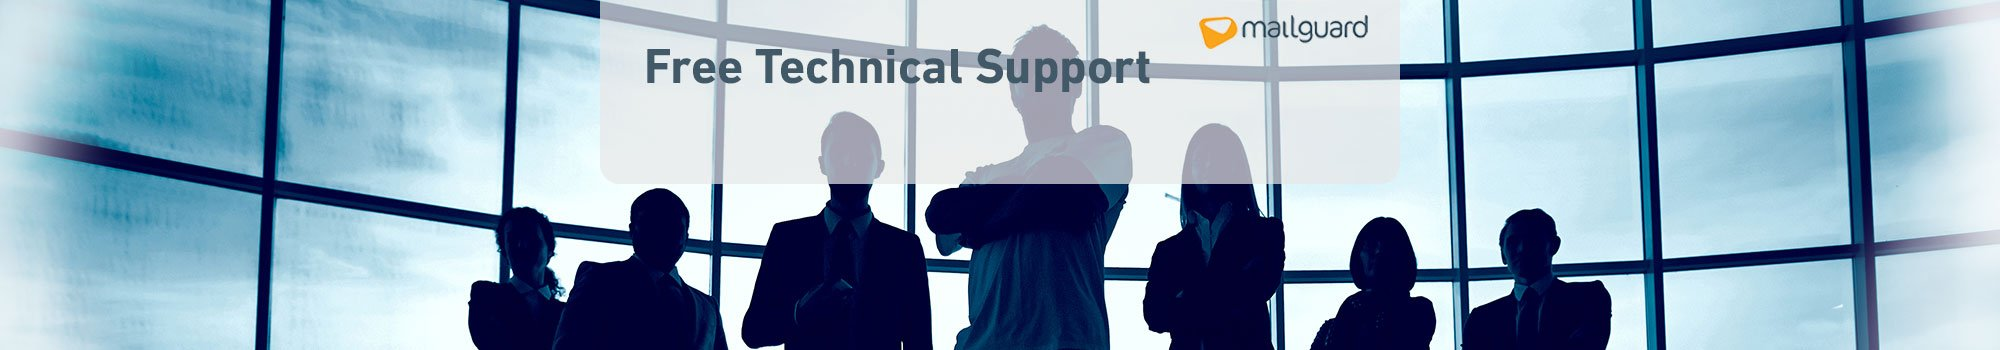 MailGuard Free Technical Support